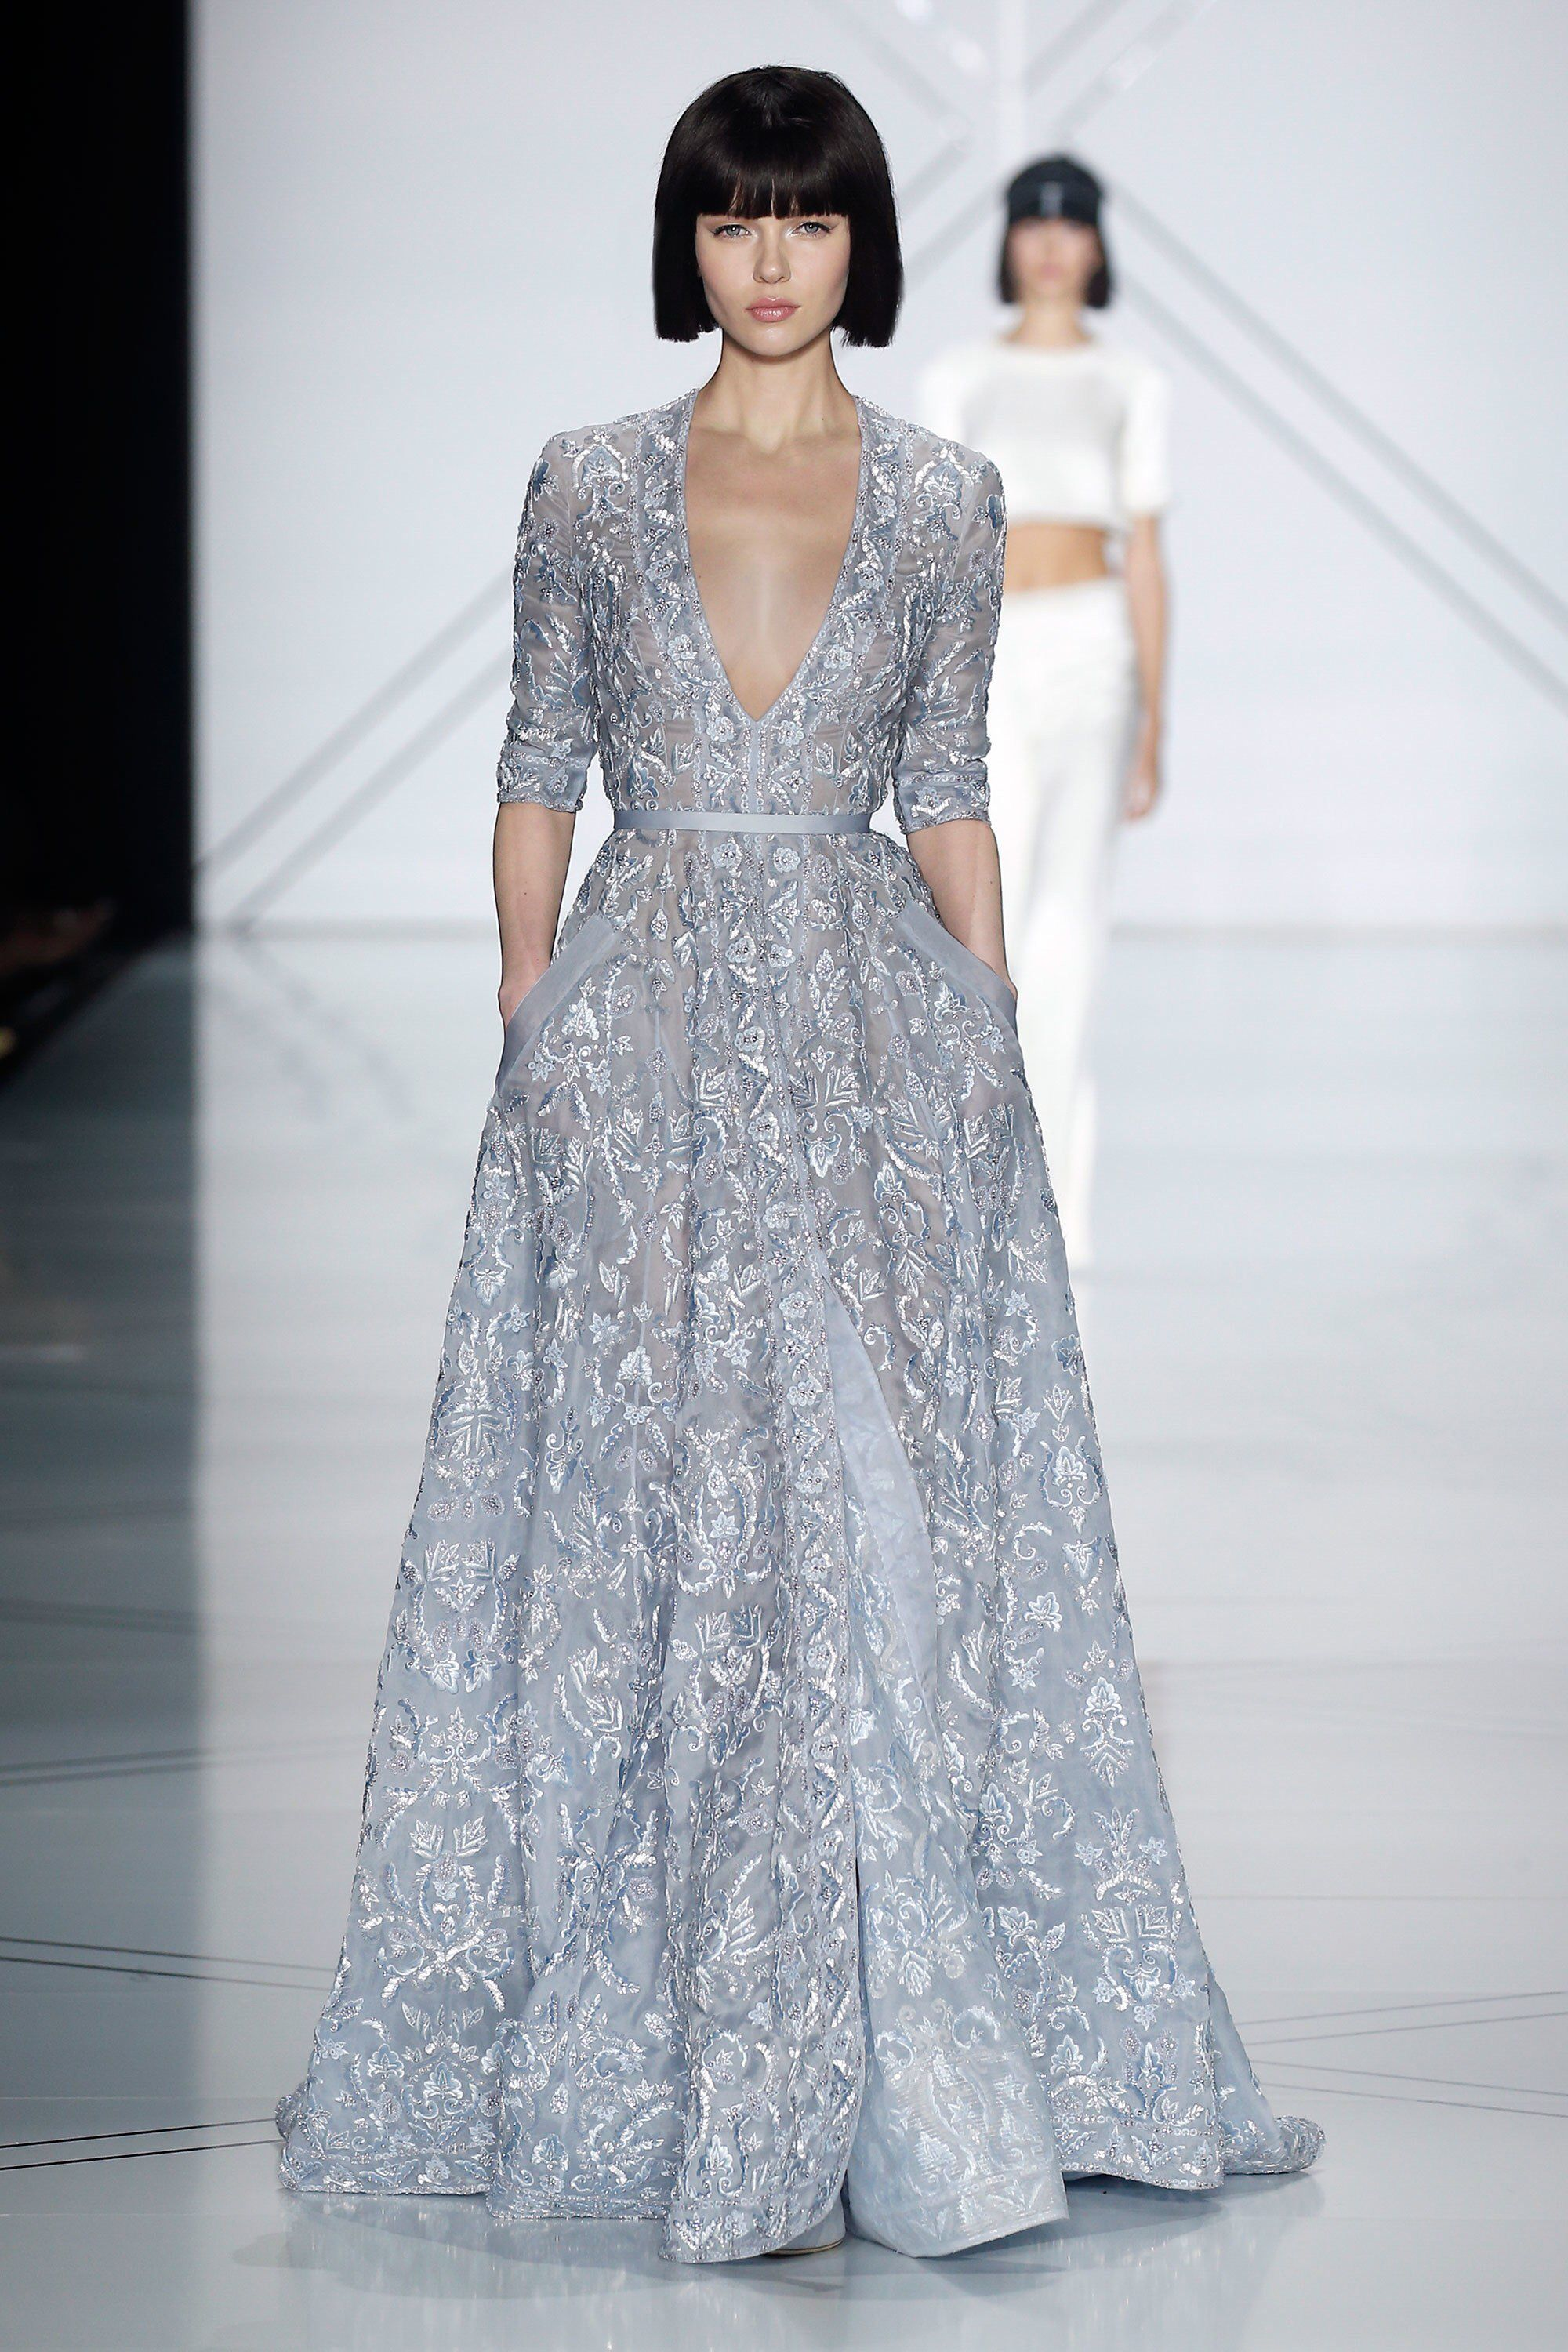 Ralph & Russo Spring 2017 Couture Fashion Show | Pinterest | Couture ...